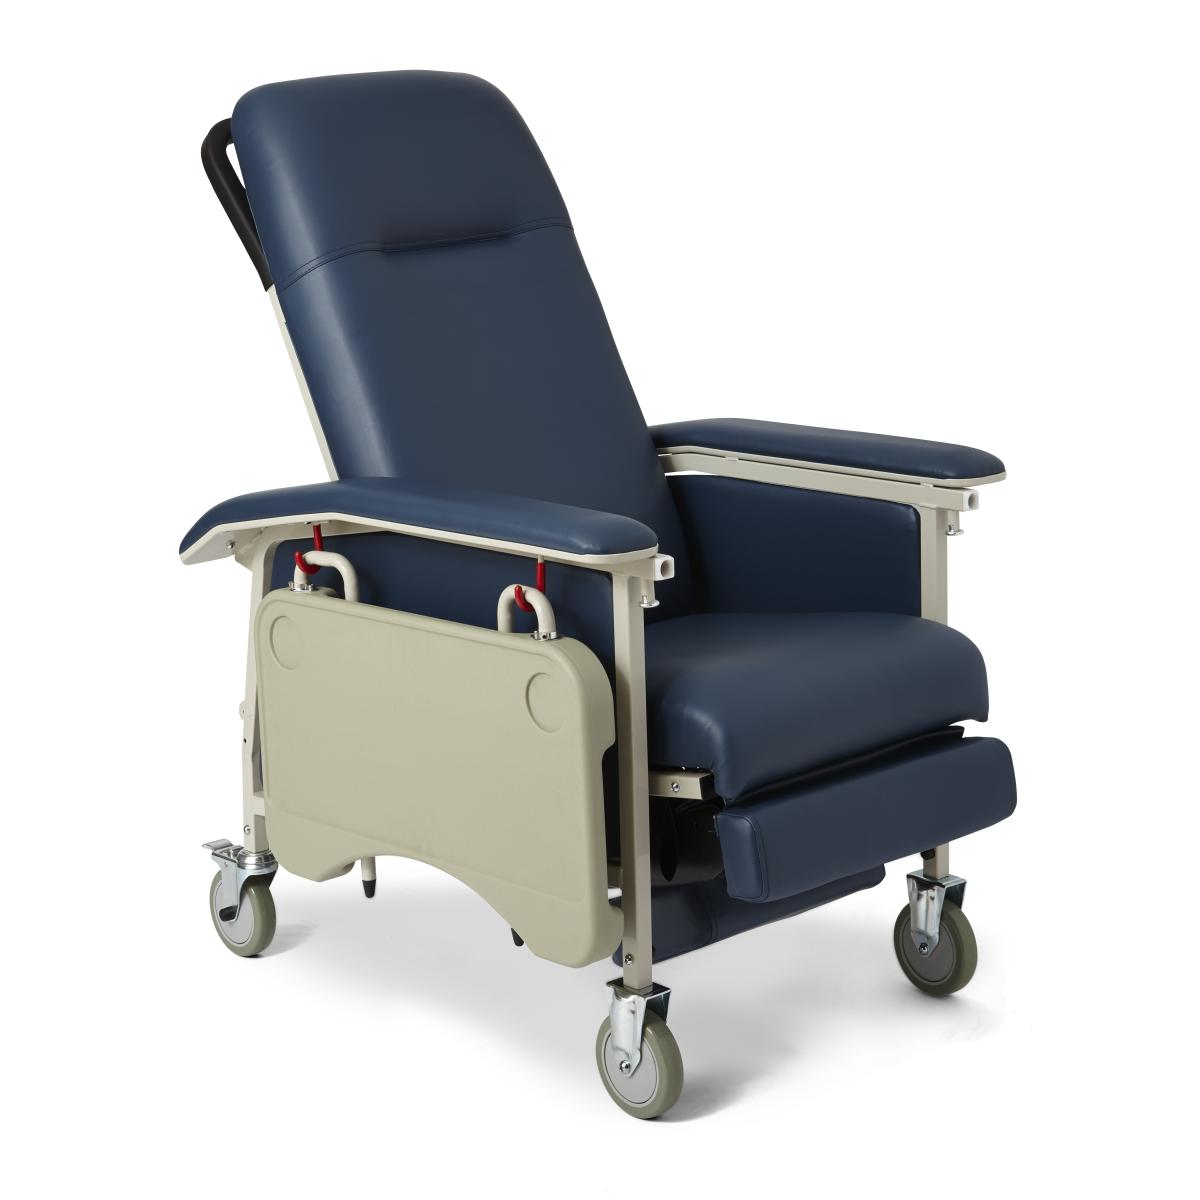 Comfortez Recliner 3 Position With Tray And 2 Locking